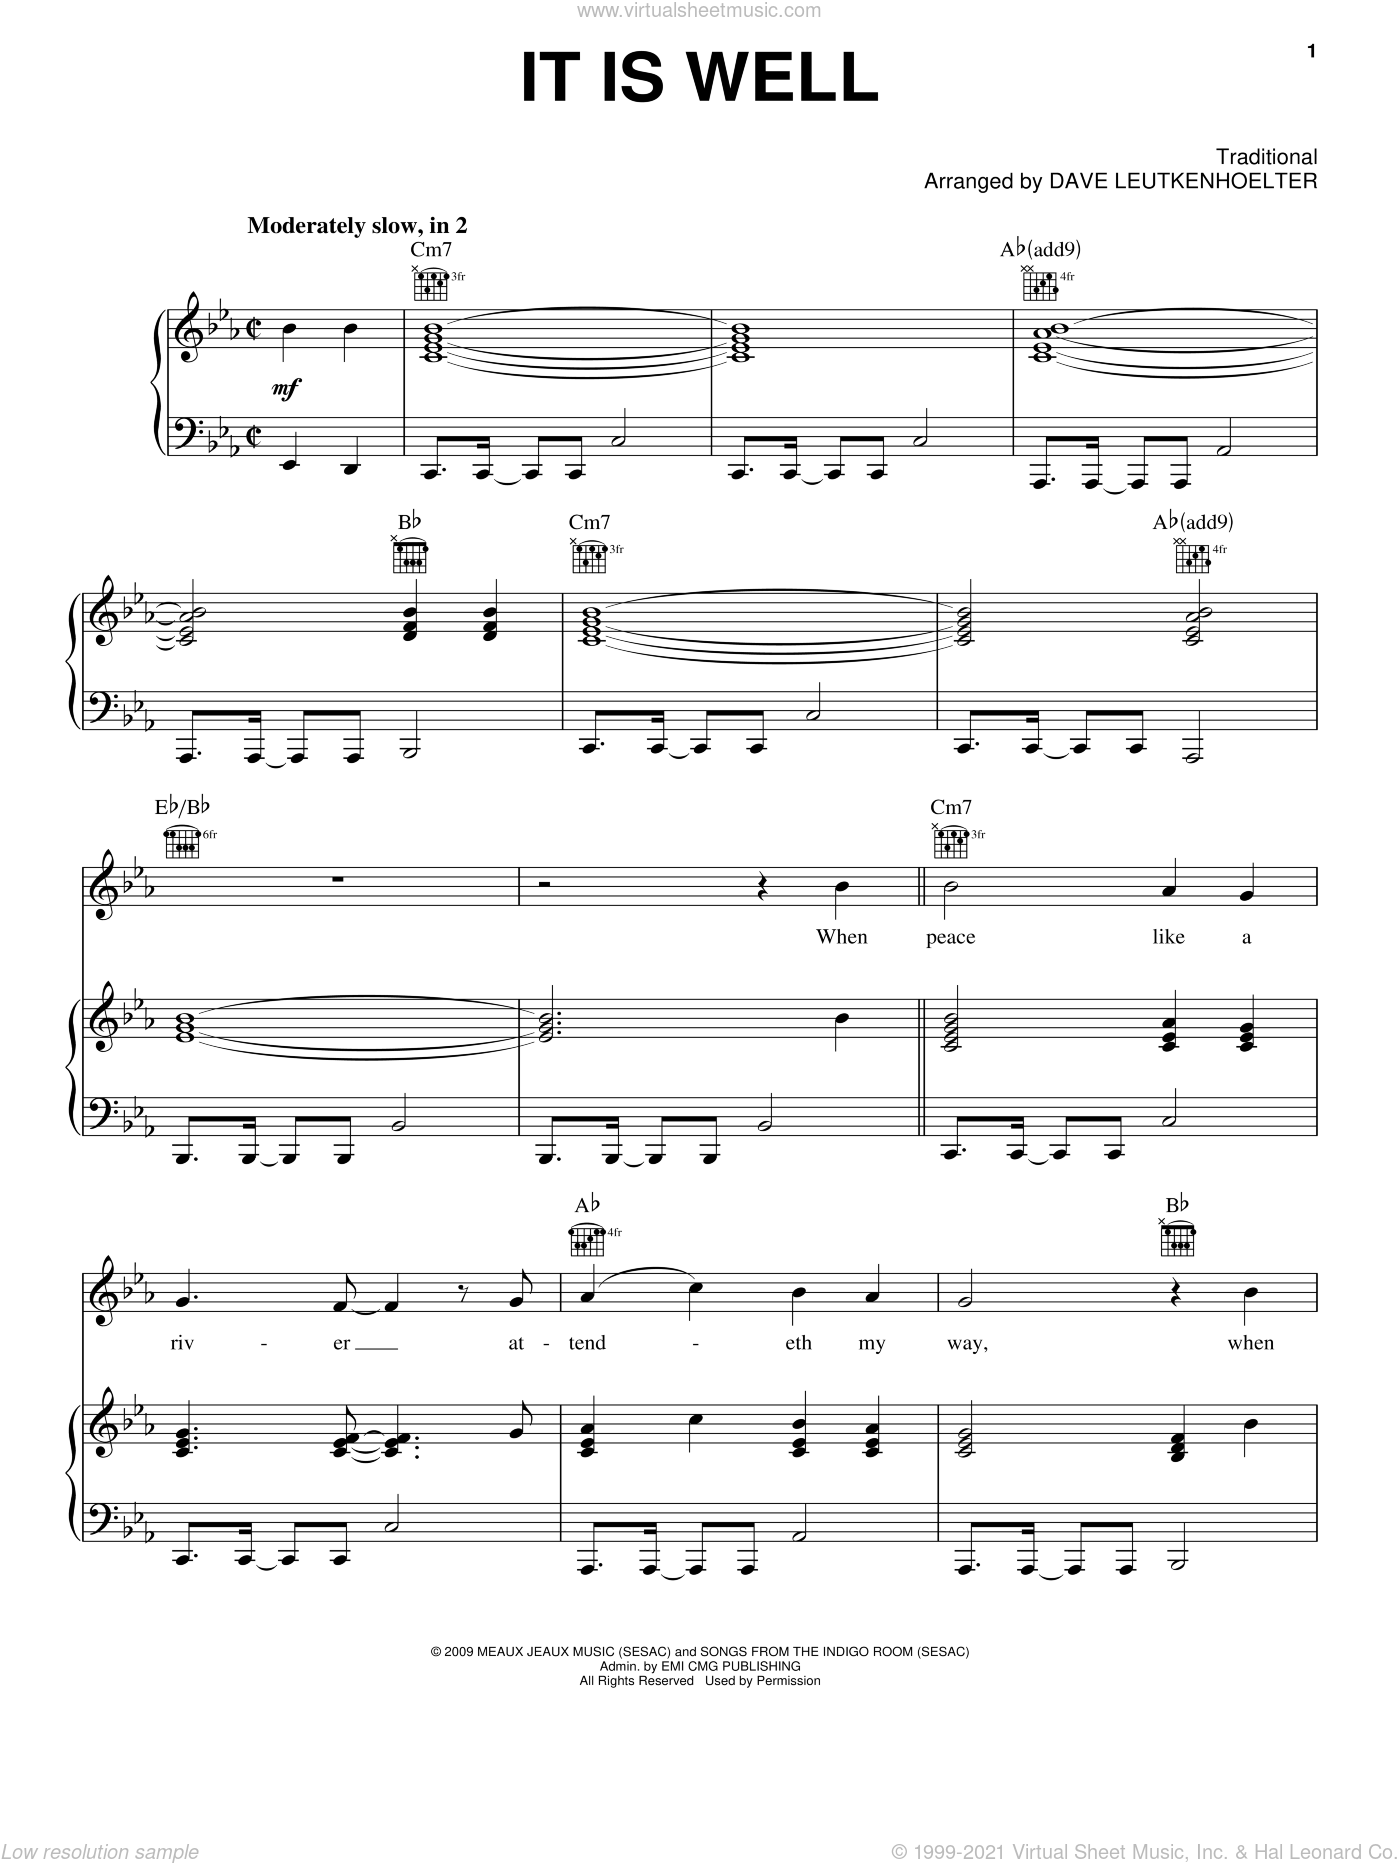 It Is Well sheet music for voice, piano or guitar by Kutless, Dave Leutkenhoelter and Miscellaneous, intermediate skill level